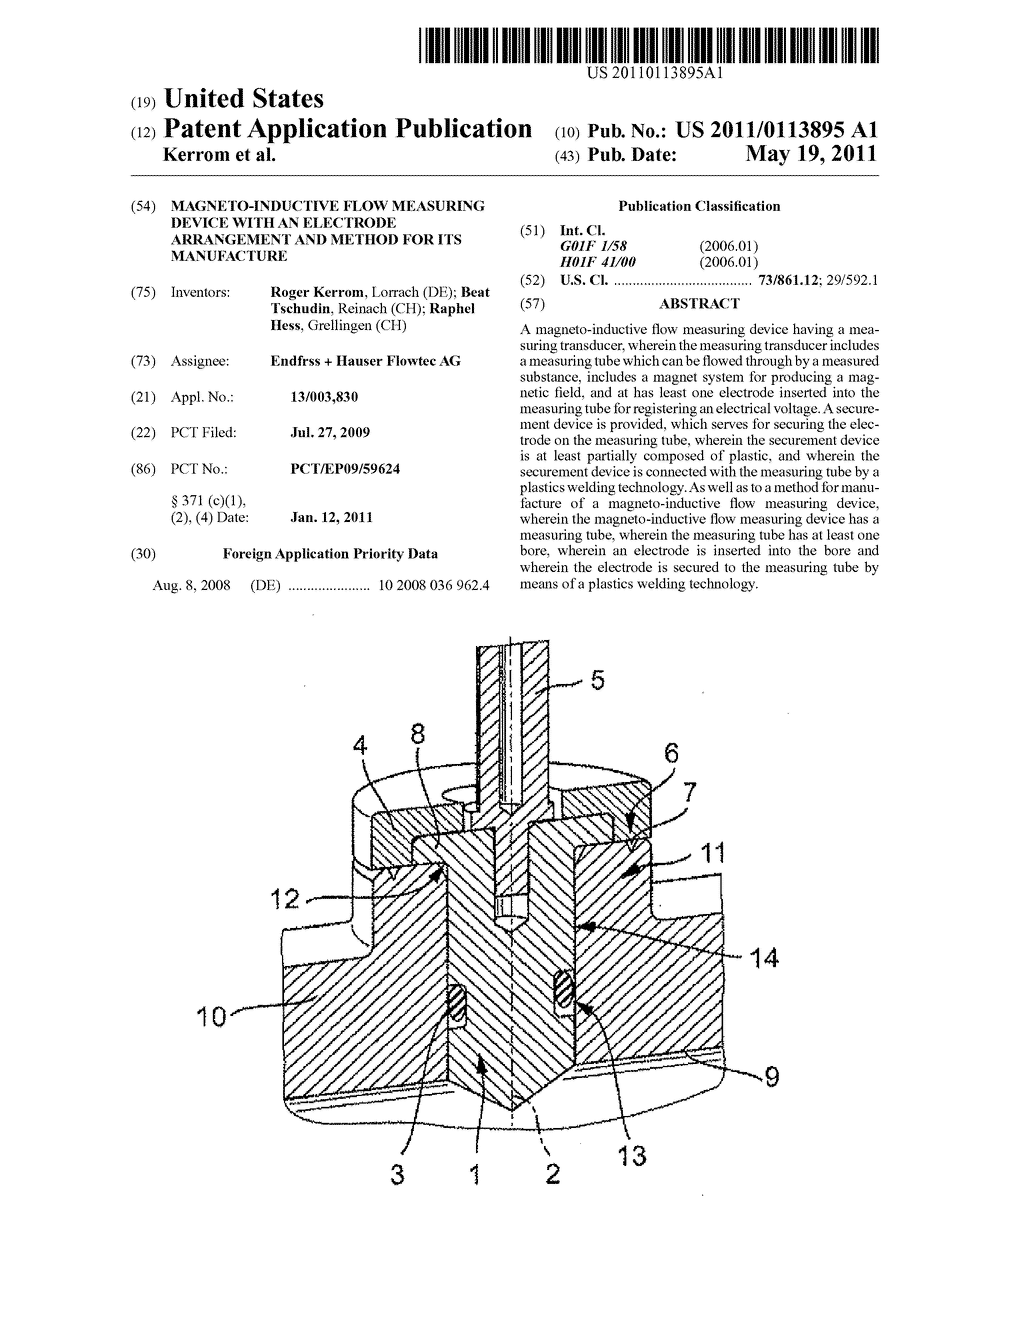 MAGNETO-INDUCTIVE FLOW MEASURING DEVICE WITH AN ELECTRODE ARRANGEMENT AND METHOD FOR ITS MANUFACTURE - diagram, schematic, and image 01